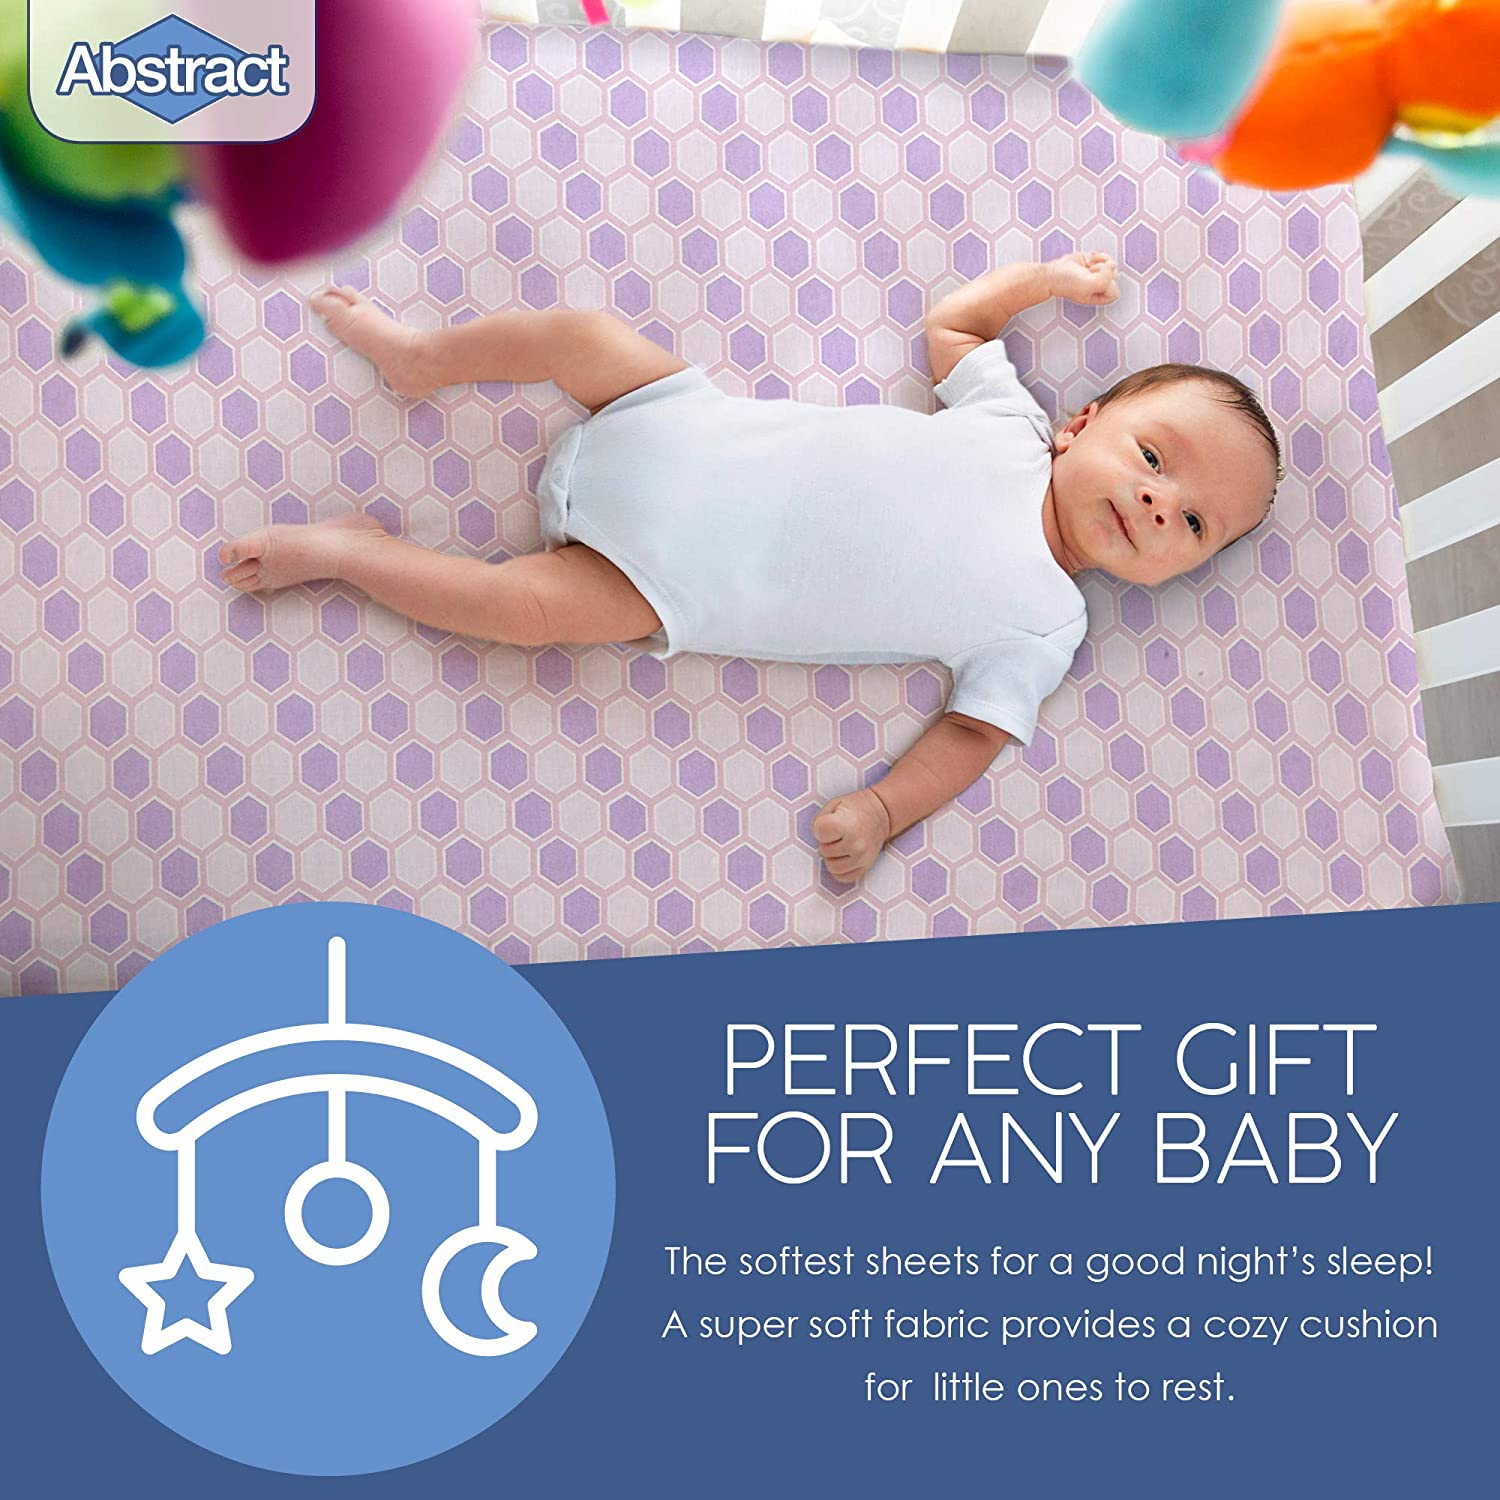 Abstract cradle sheets for Baby Cradle Sheets for Boys and Girls Infant Deep Fitted Soft Jersey 100/% Cotton Knit Cradle Sheets Cradle Sheets Fitted 18 X 36 Zigzag Blue